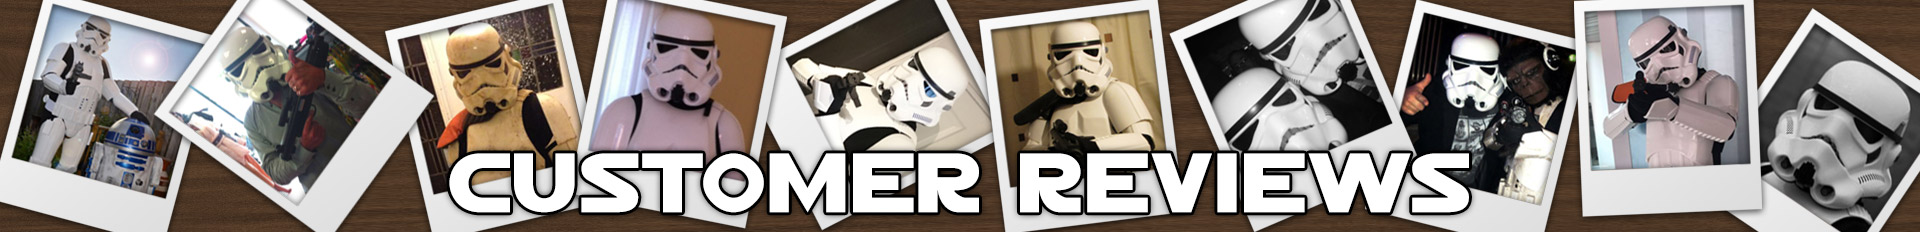 Stormtrooper Costume Reviews